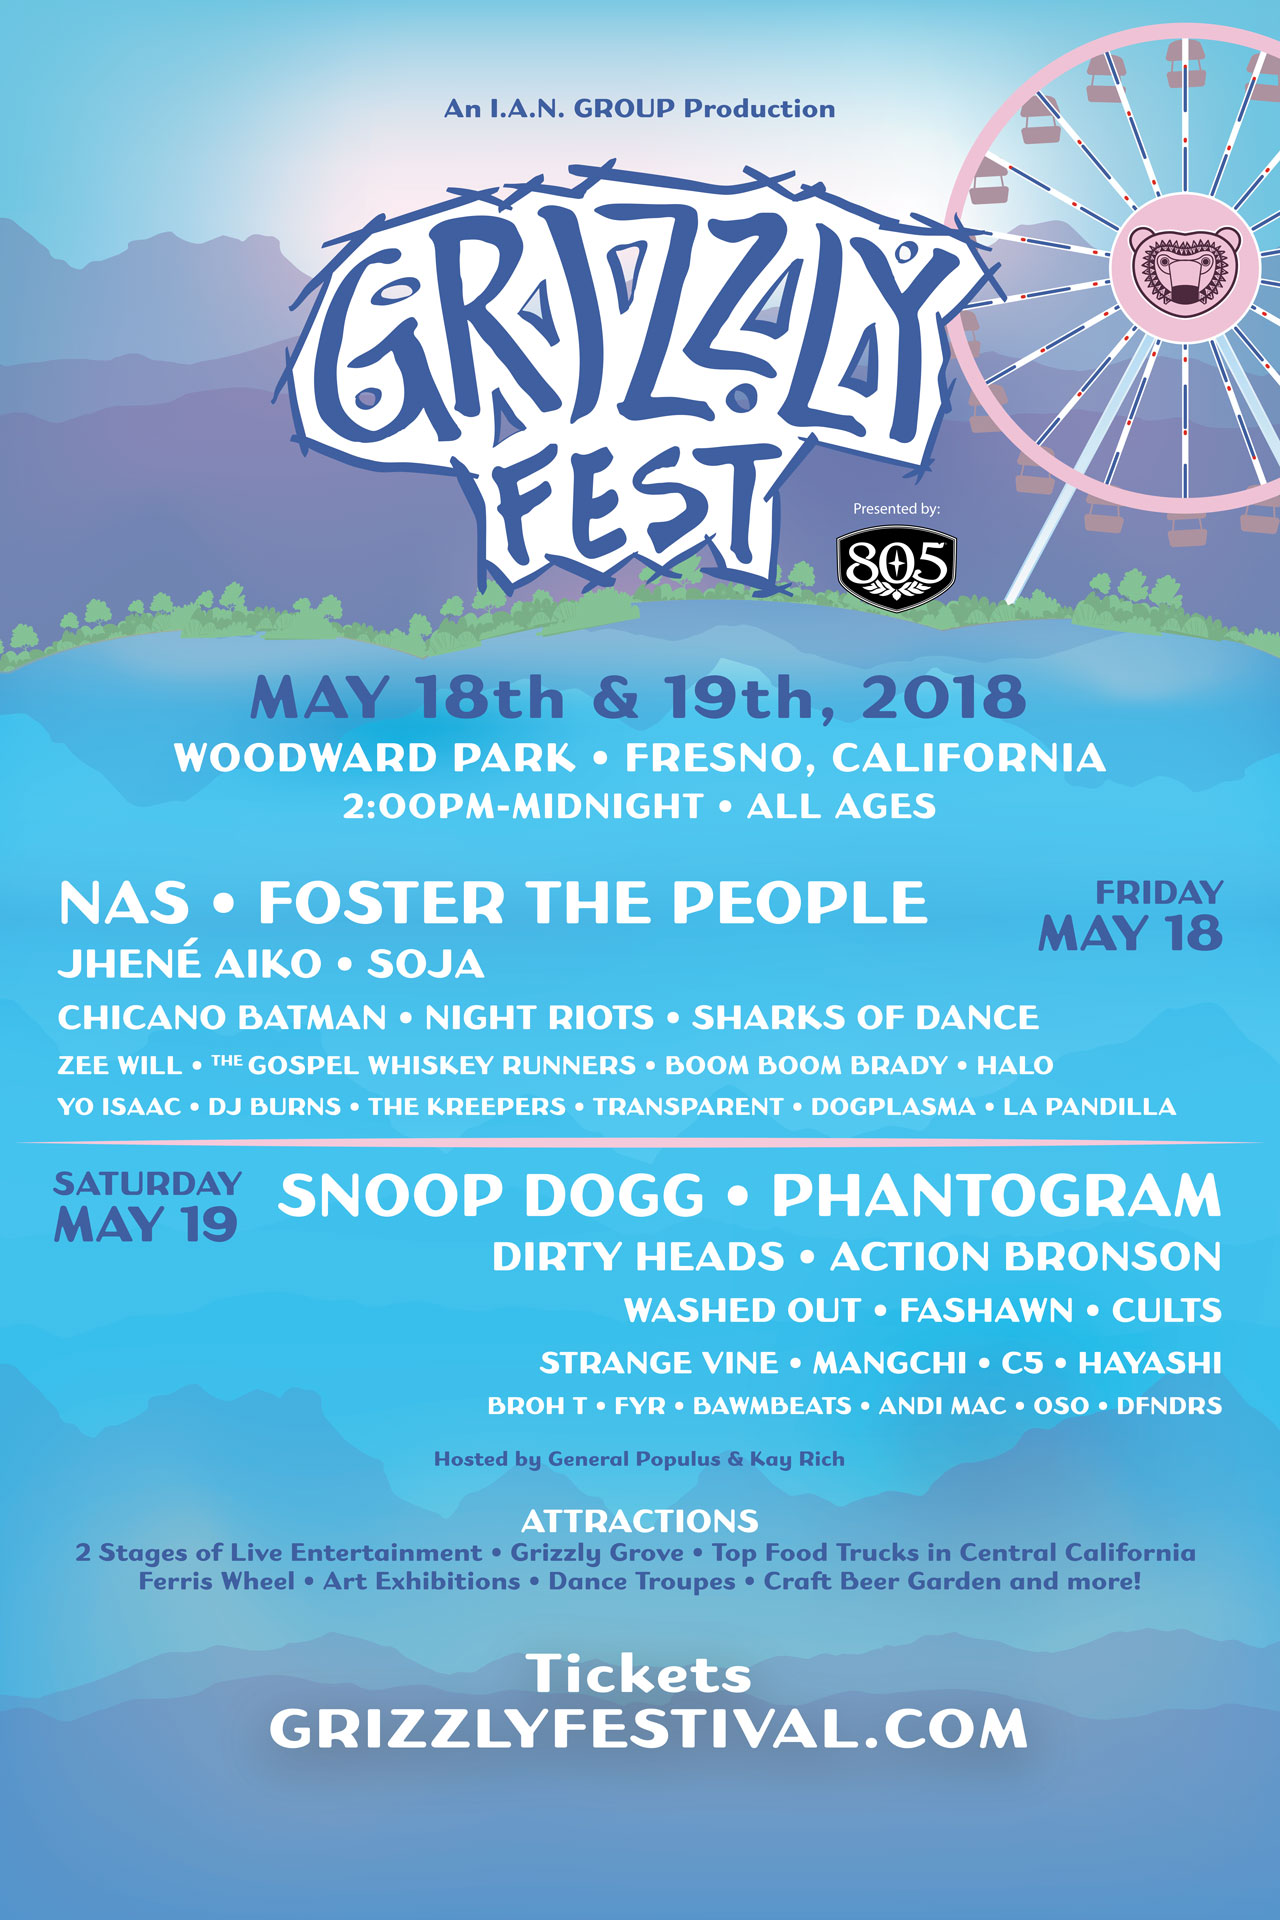 GRIZZLY FEST 2018s